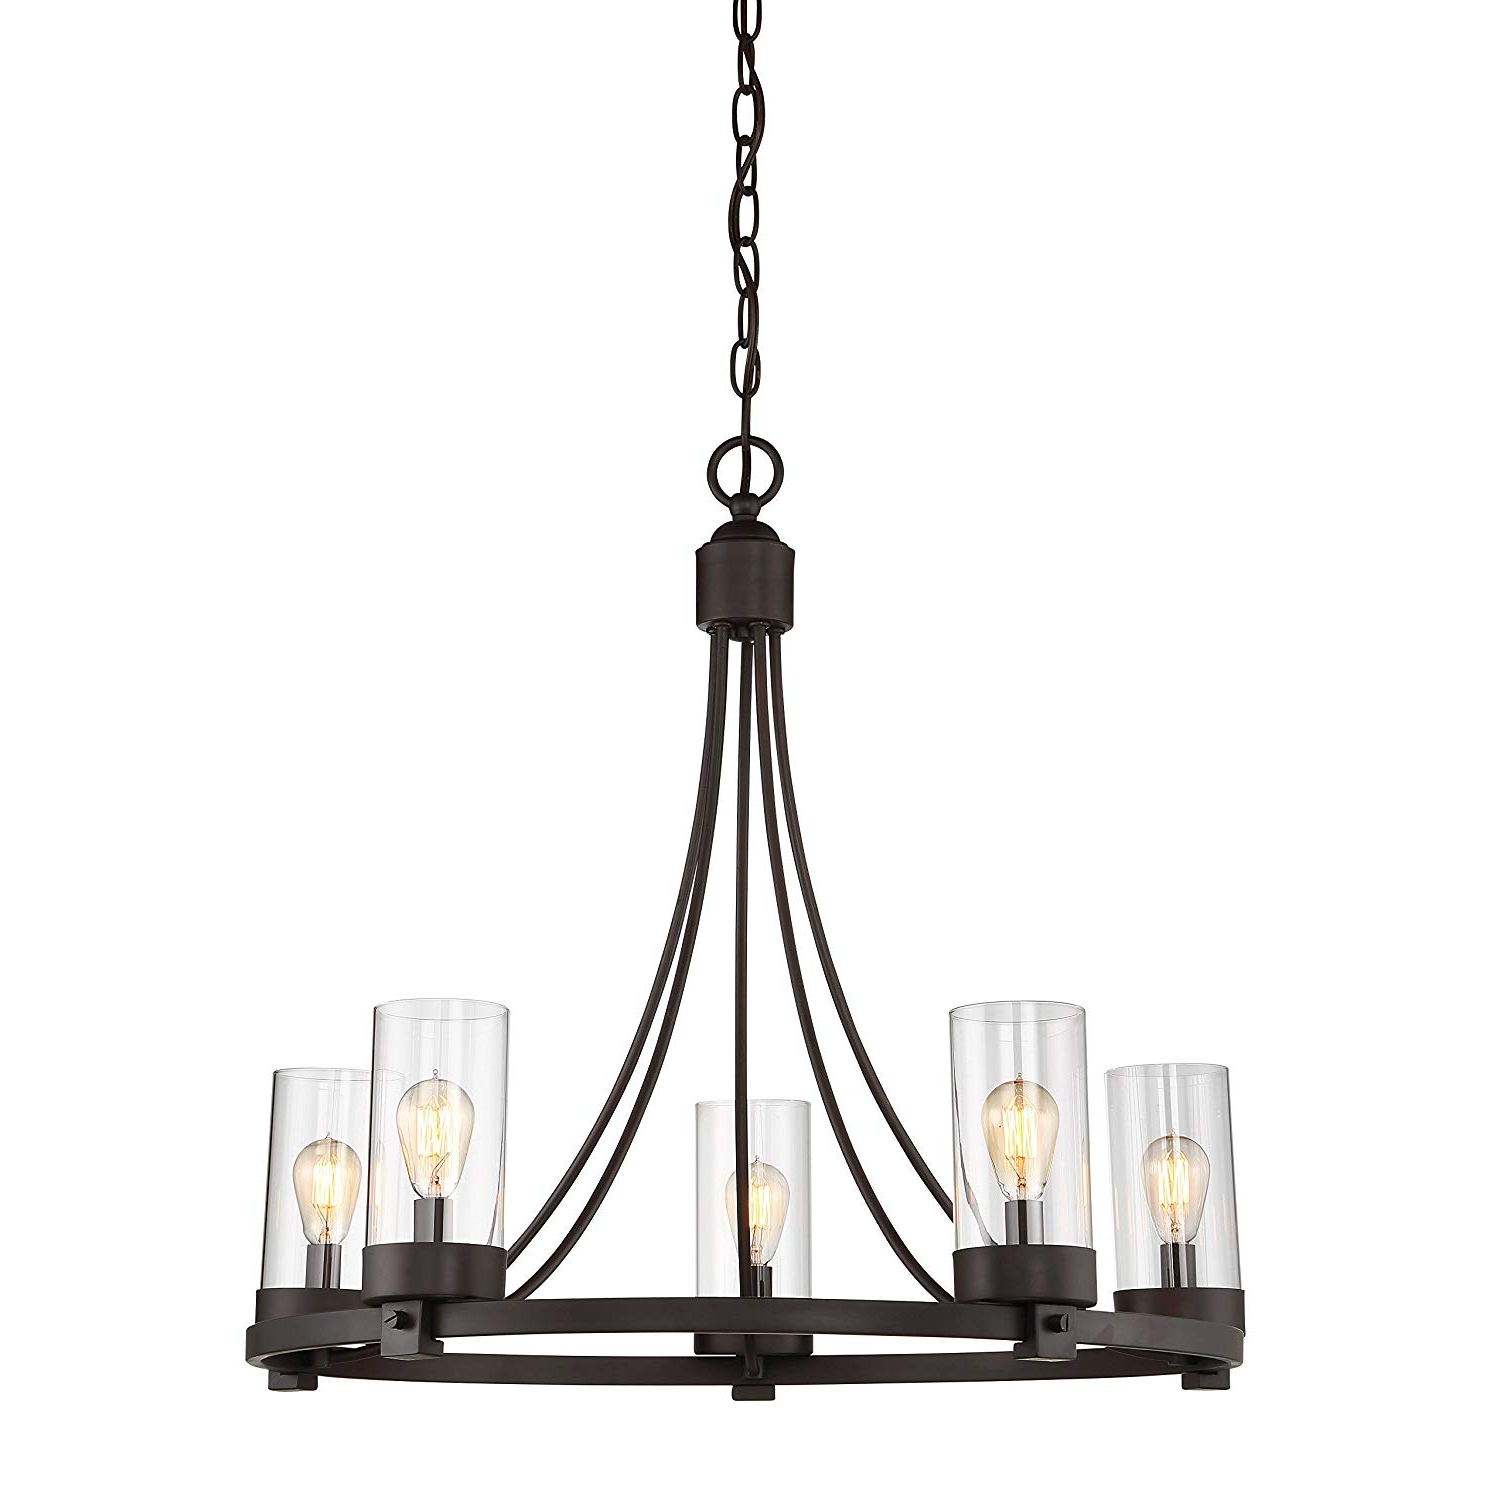 Most Recently Released Shaylee 6 Light Candle Style Chandeliers Inside Agave Oil Rubbed Bronze 5 Light Candle Style Chandelier (View 16 of 25)